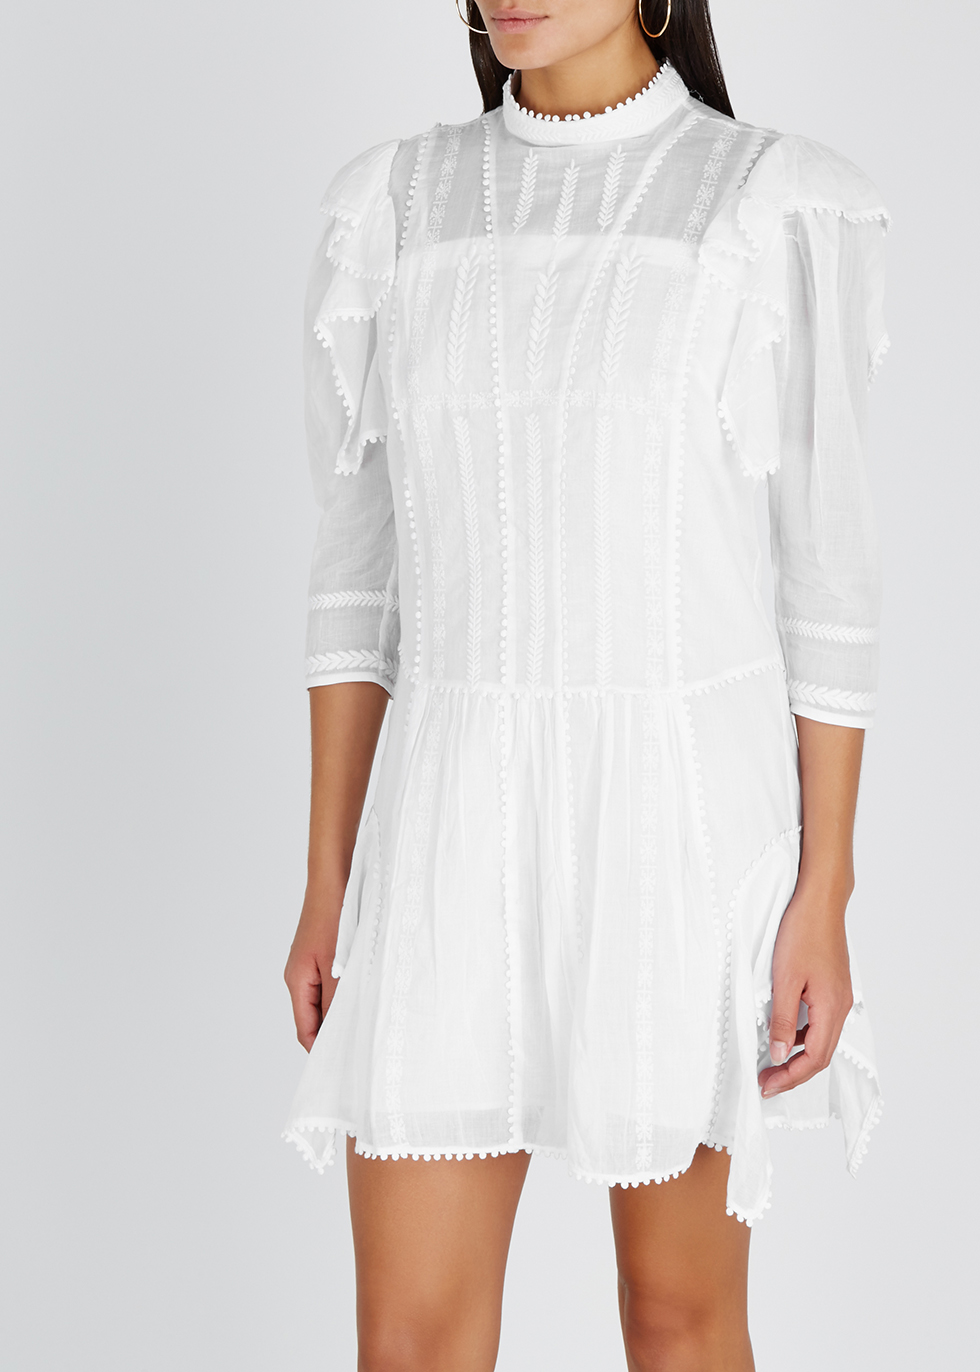 Alba embroidered cotton mini dress - Isabel Marant Étoile